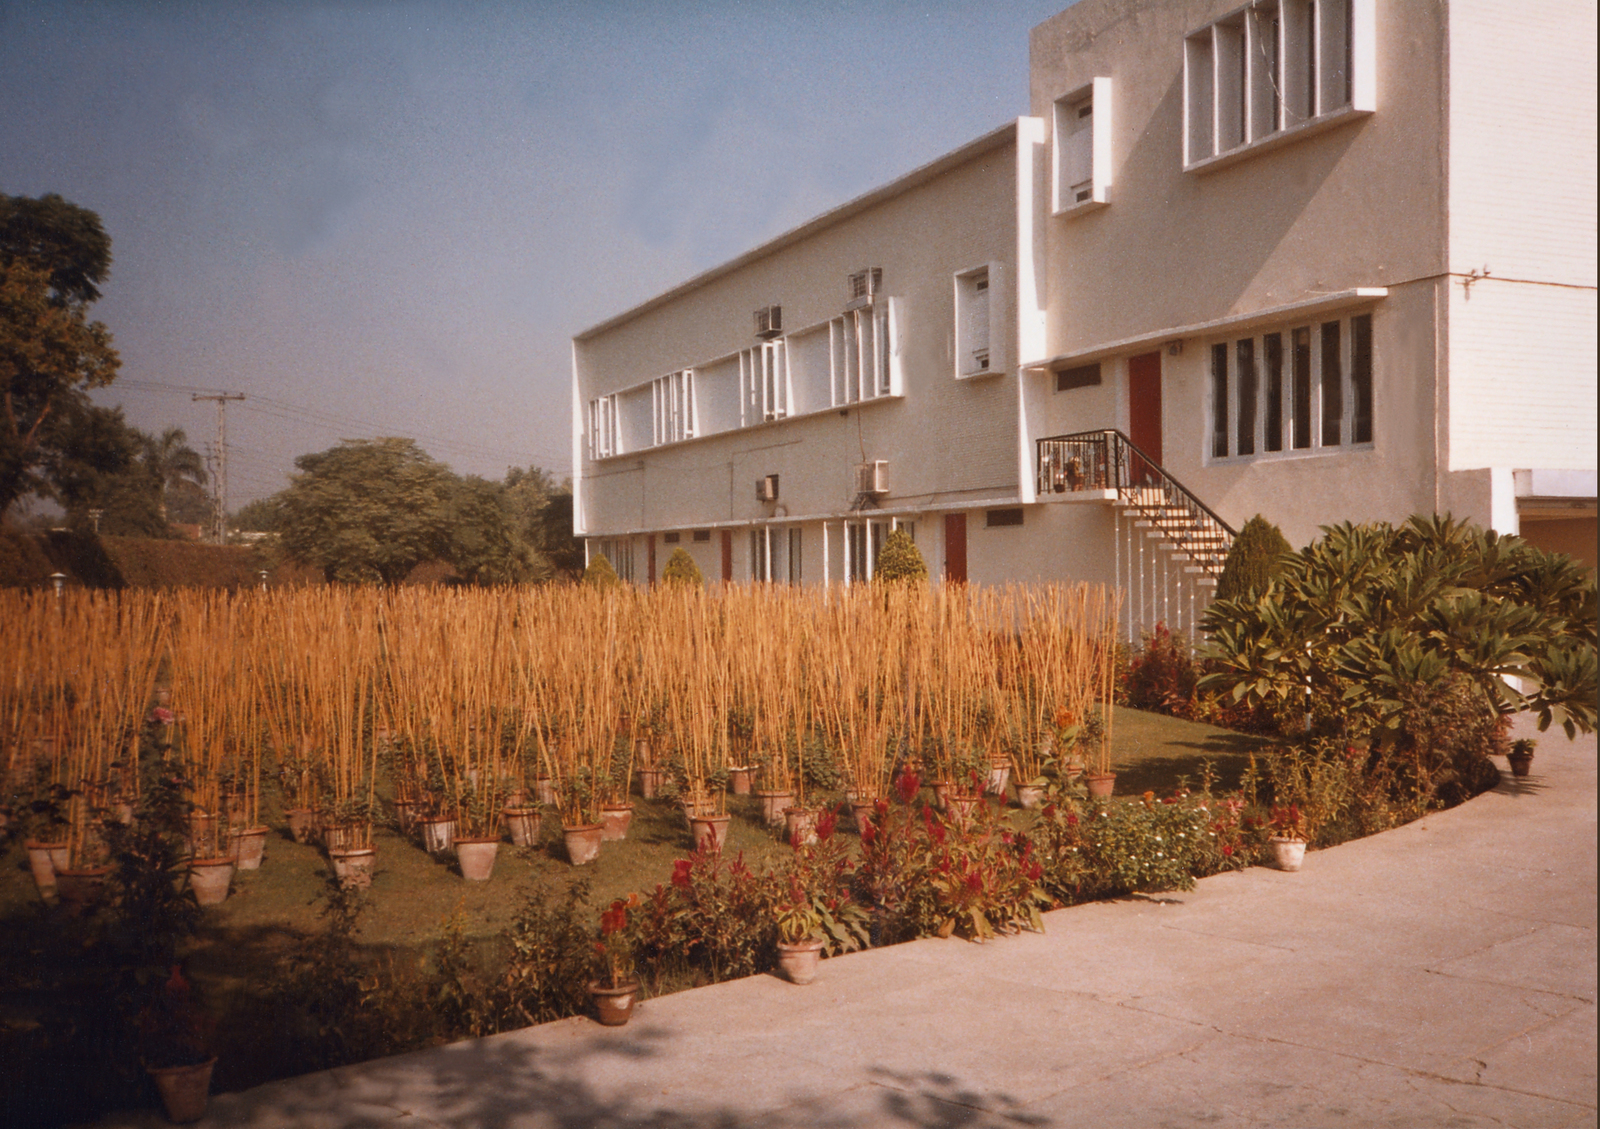 Lahore - Multi-Unit Residential Building - 1983